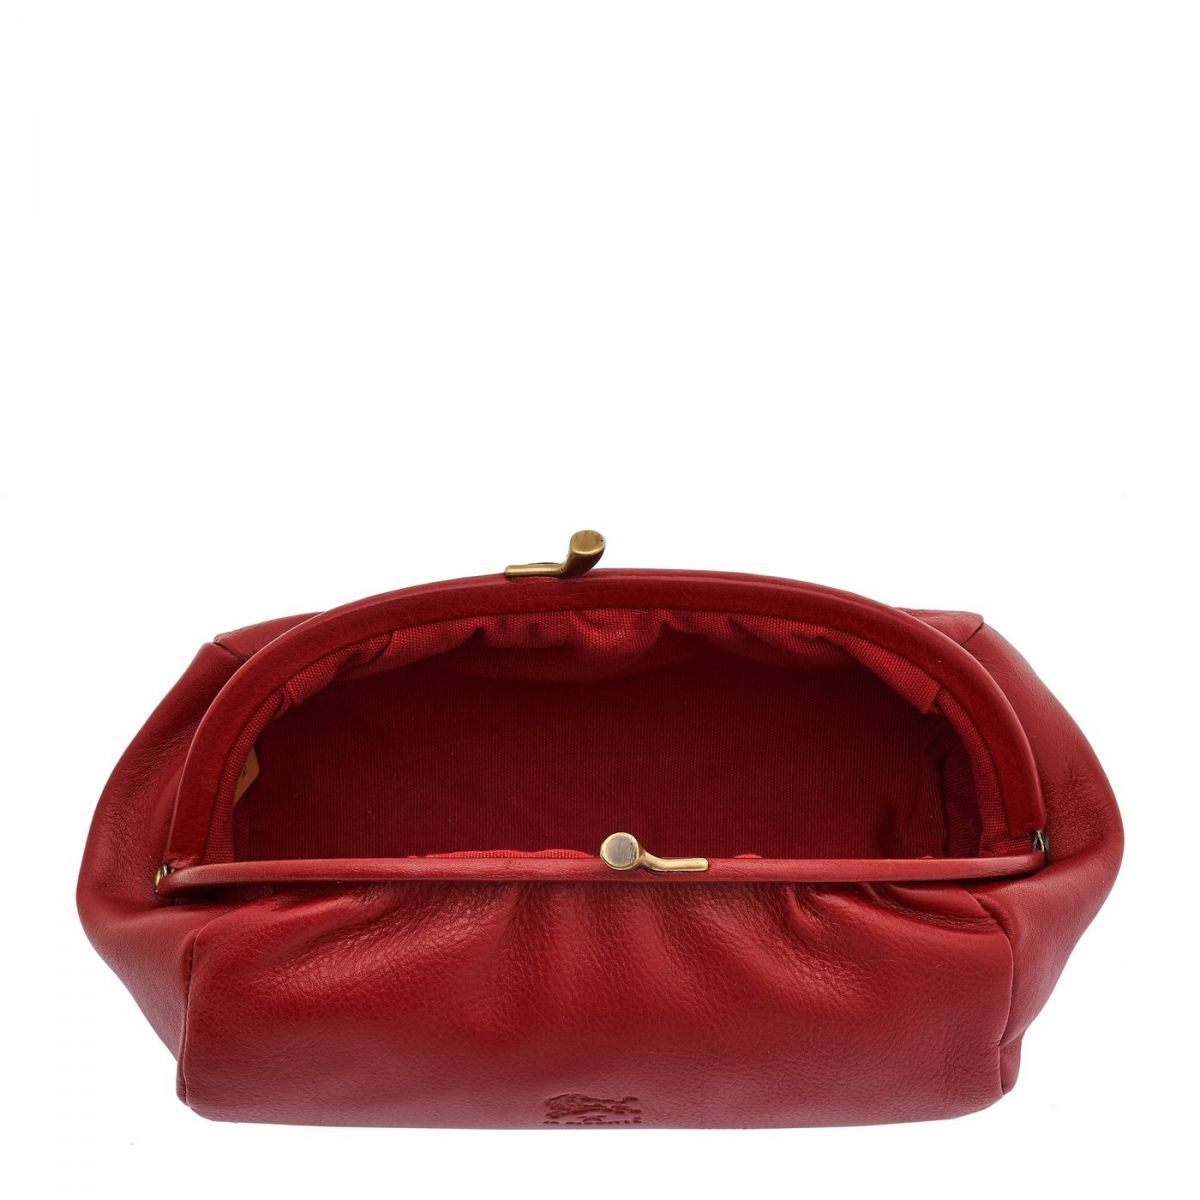 Women's Case  in Cowhide Double Leather SCA009 color Red | Details